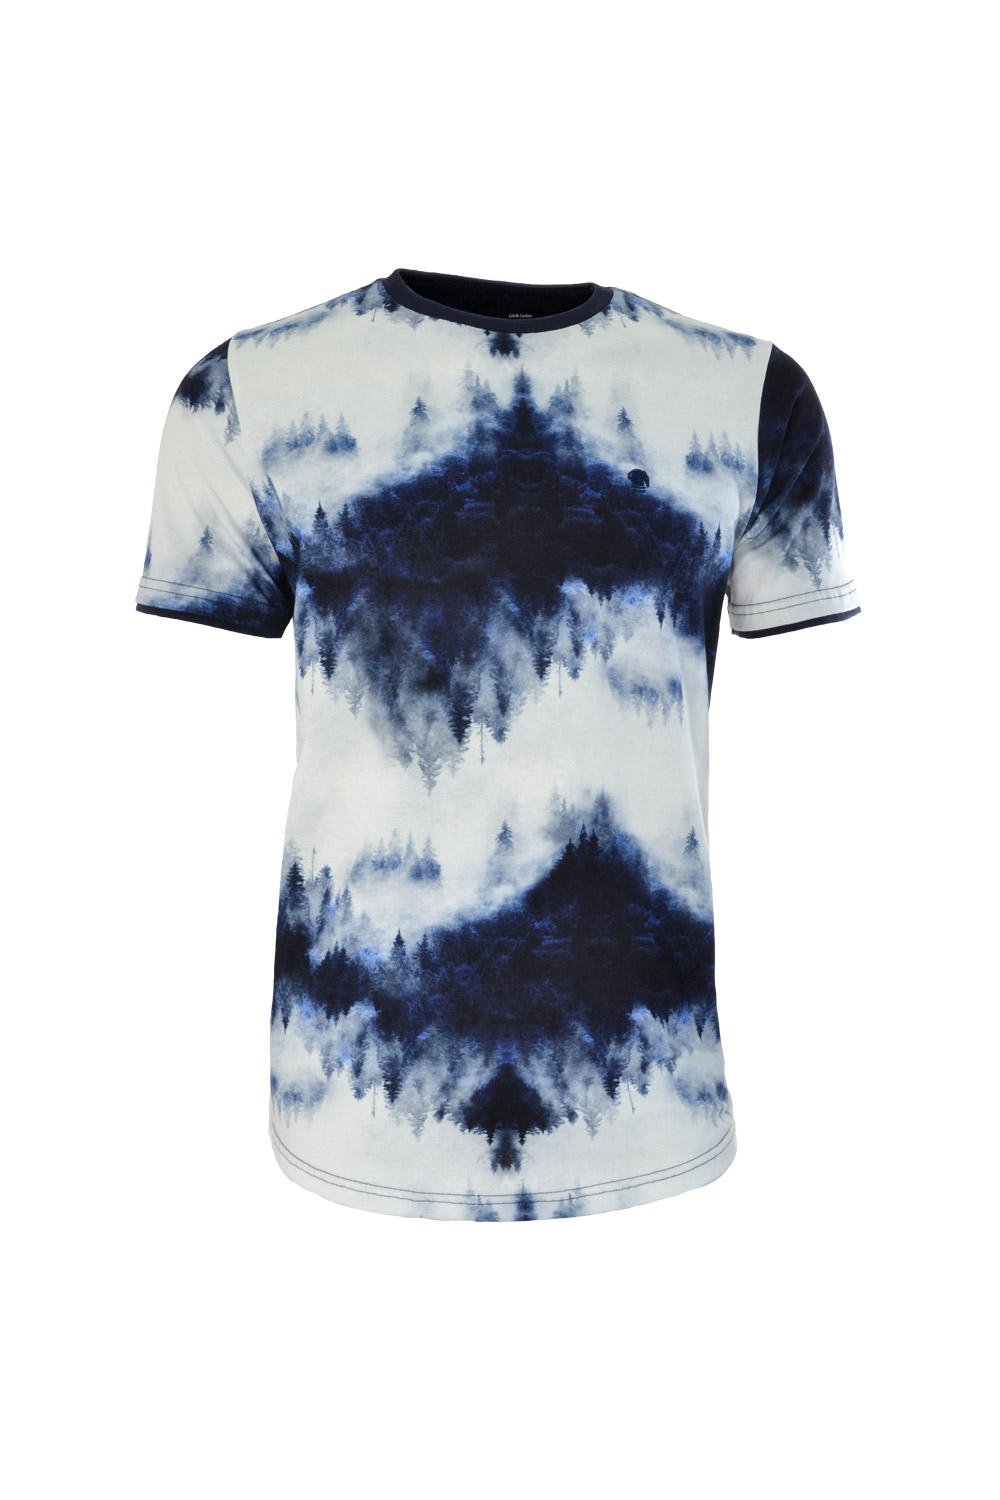 CAMISETA MC BLUES SUPER SLIM ALGODAO GOLA C ESTAMPA AZUL MARINHO